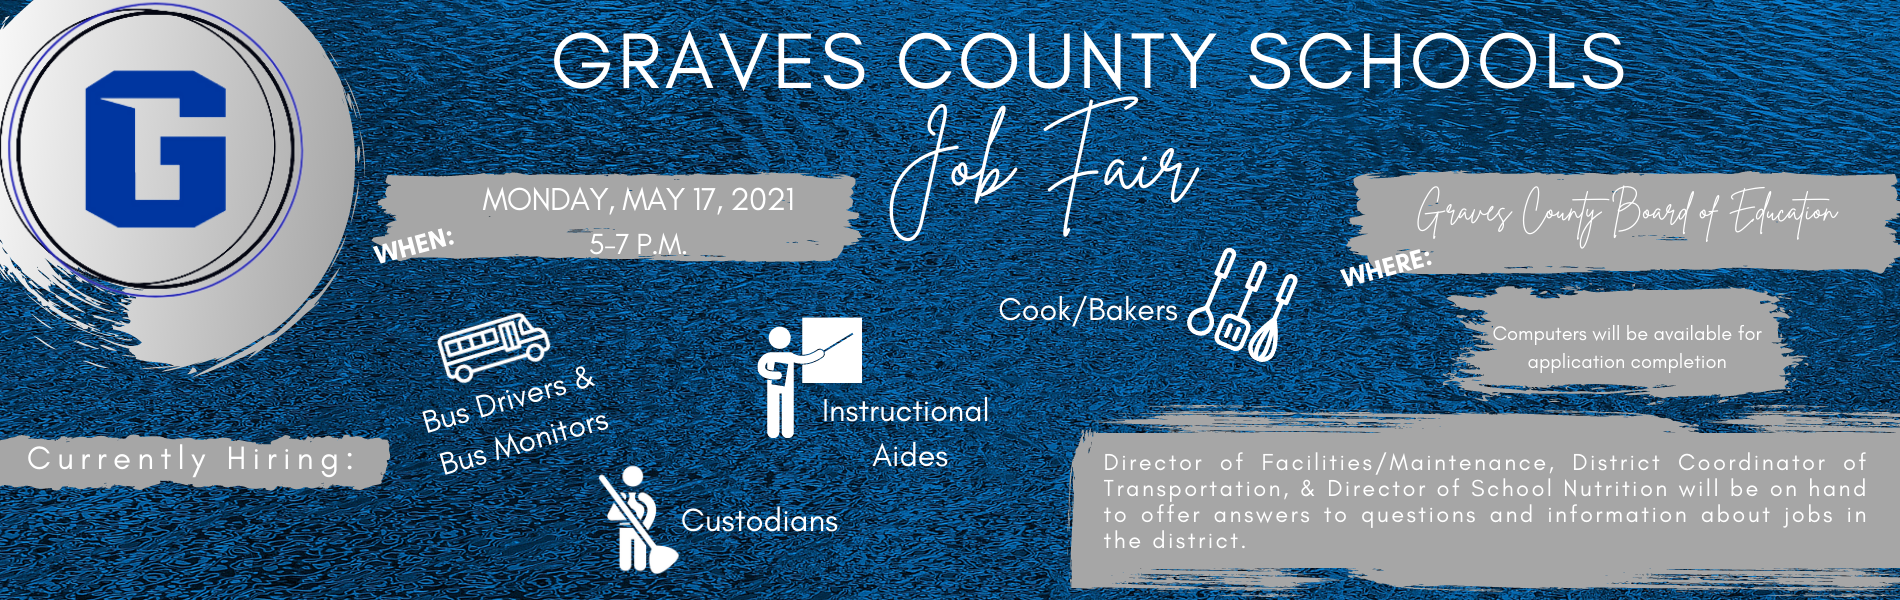 Graves County Job Fair